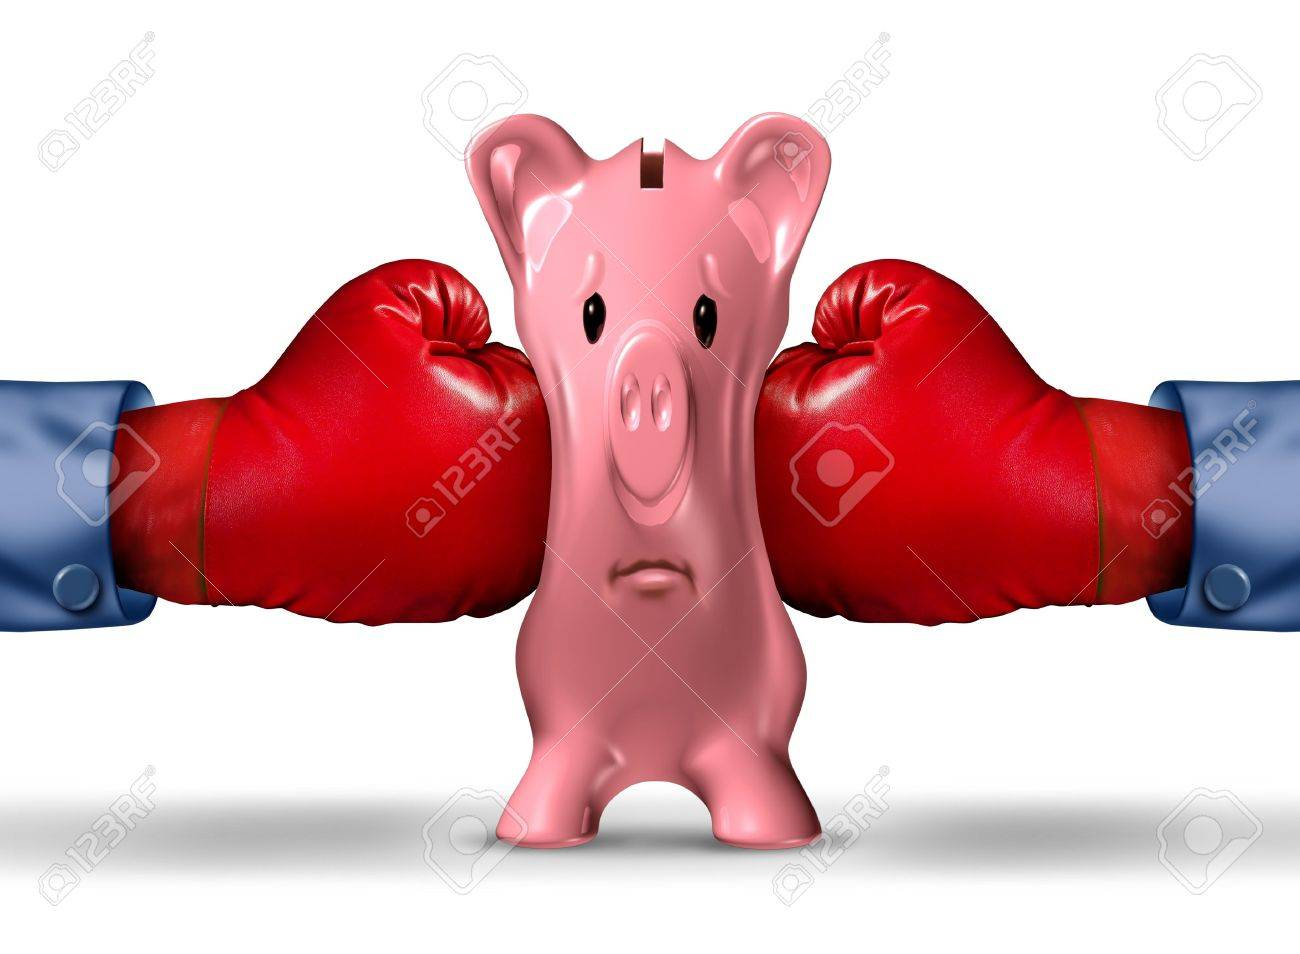 Financial money pressure and money crunch business concept with two red boxing gloves putting the squeeze on a pink piggy bank under a finance crisis pressure as an icon of savings and budget problems Stock Photo - 21492066